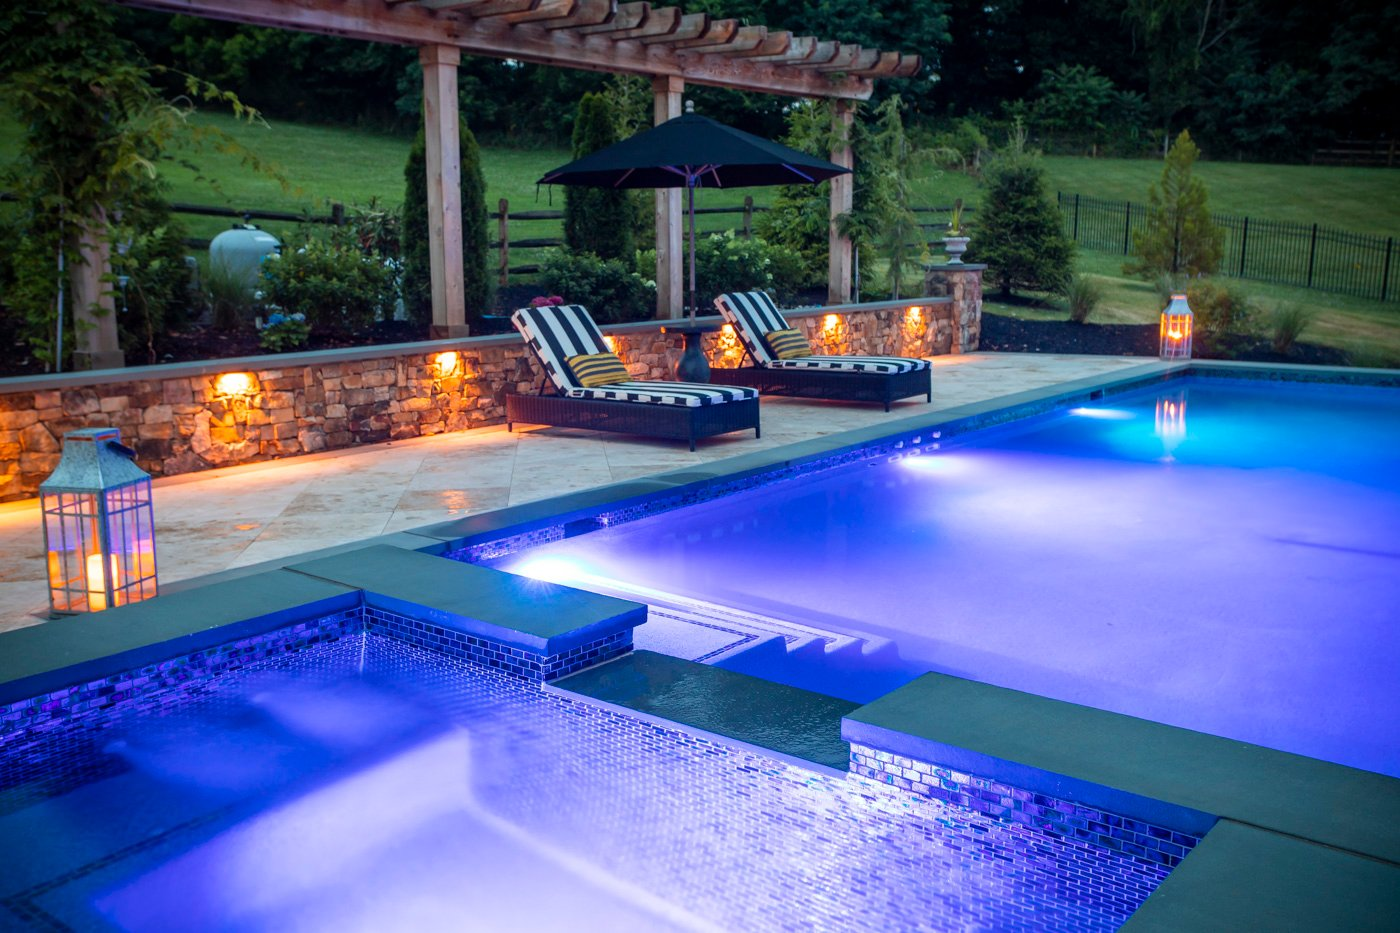 Swimming Pool Trends You'll See in 2020's & Finding a Pool Builder in Northern VA to Pull Them Off